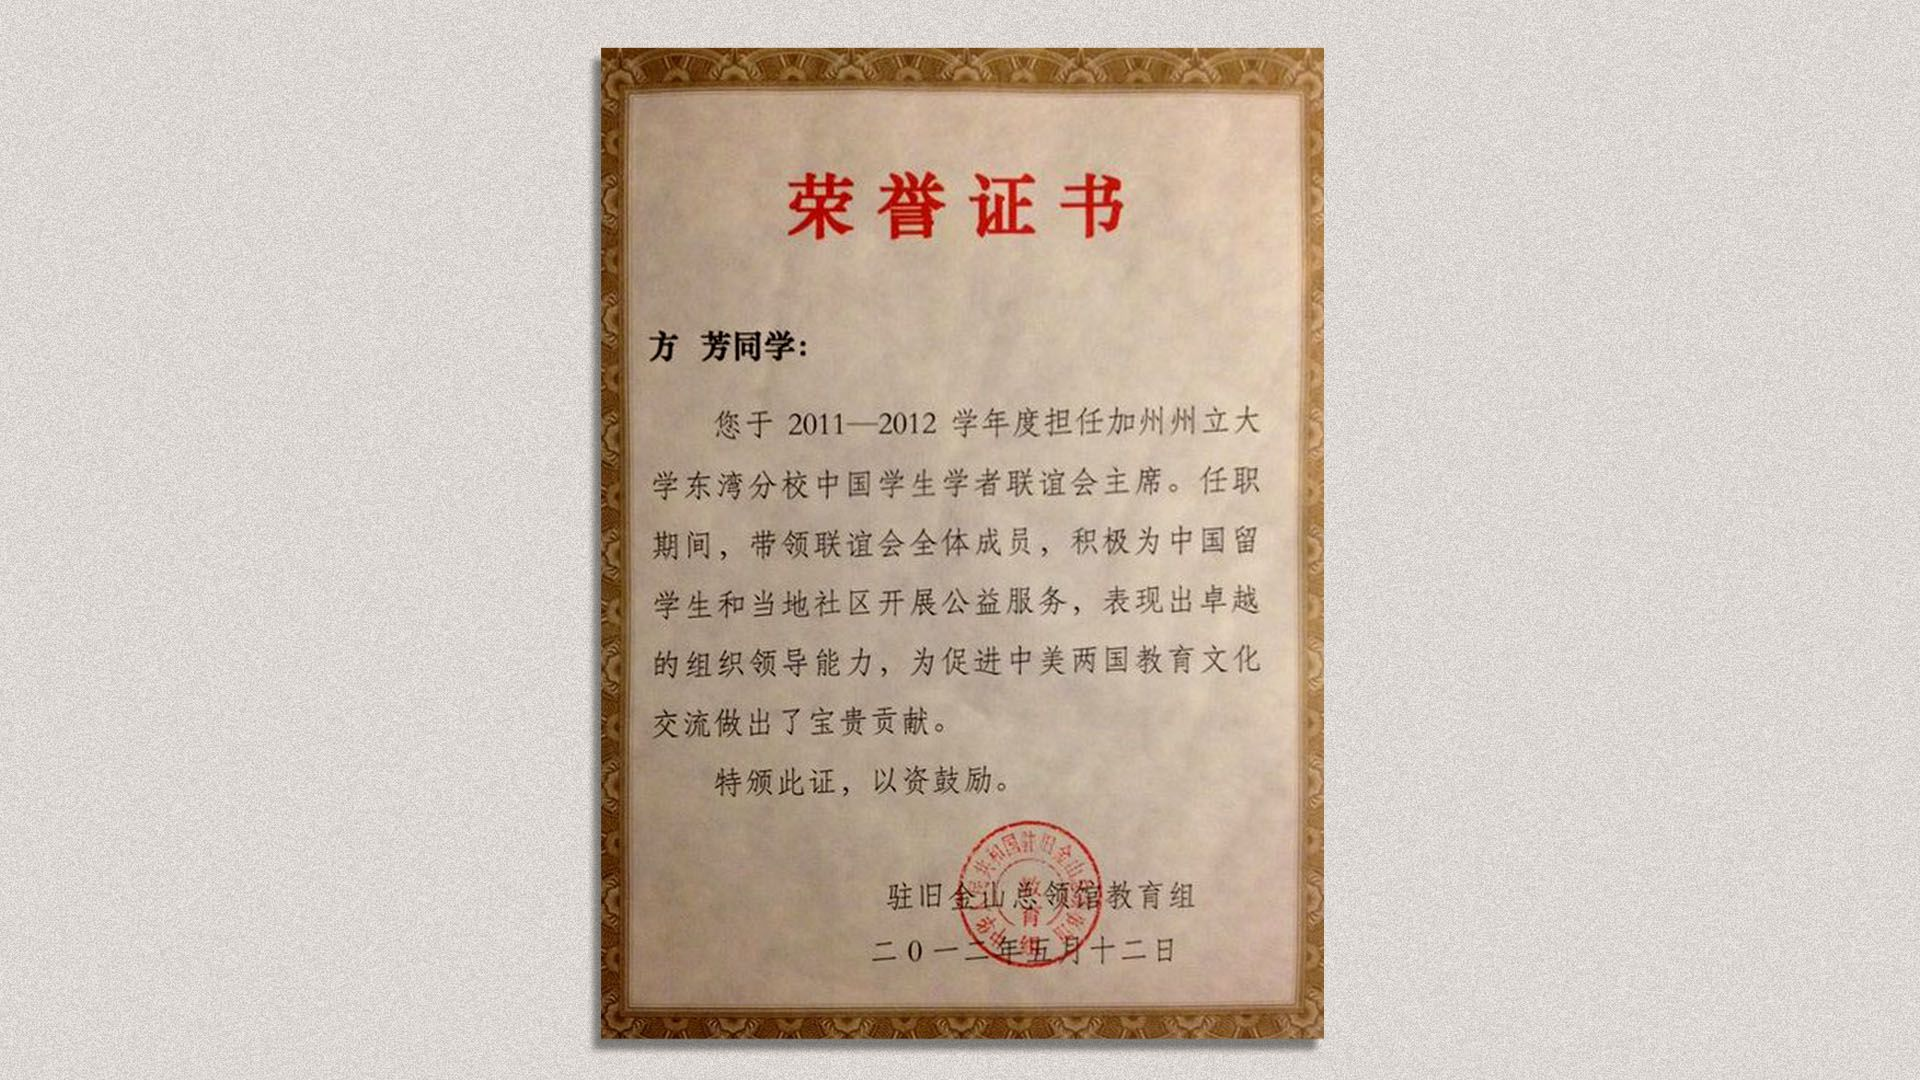 """A """"certificate of honor"""" awarded to Christine Fang by the Chinese consulate in San Francisco for her work serving as the president of the CSU East Bay Chinese Student Association."""